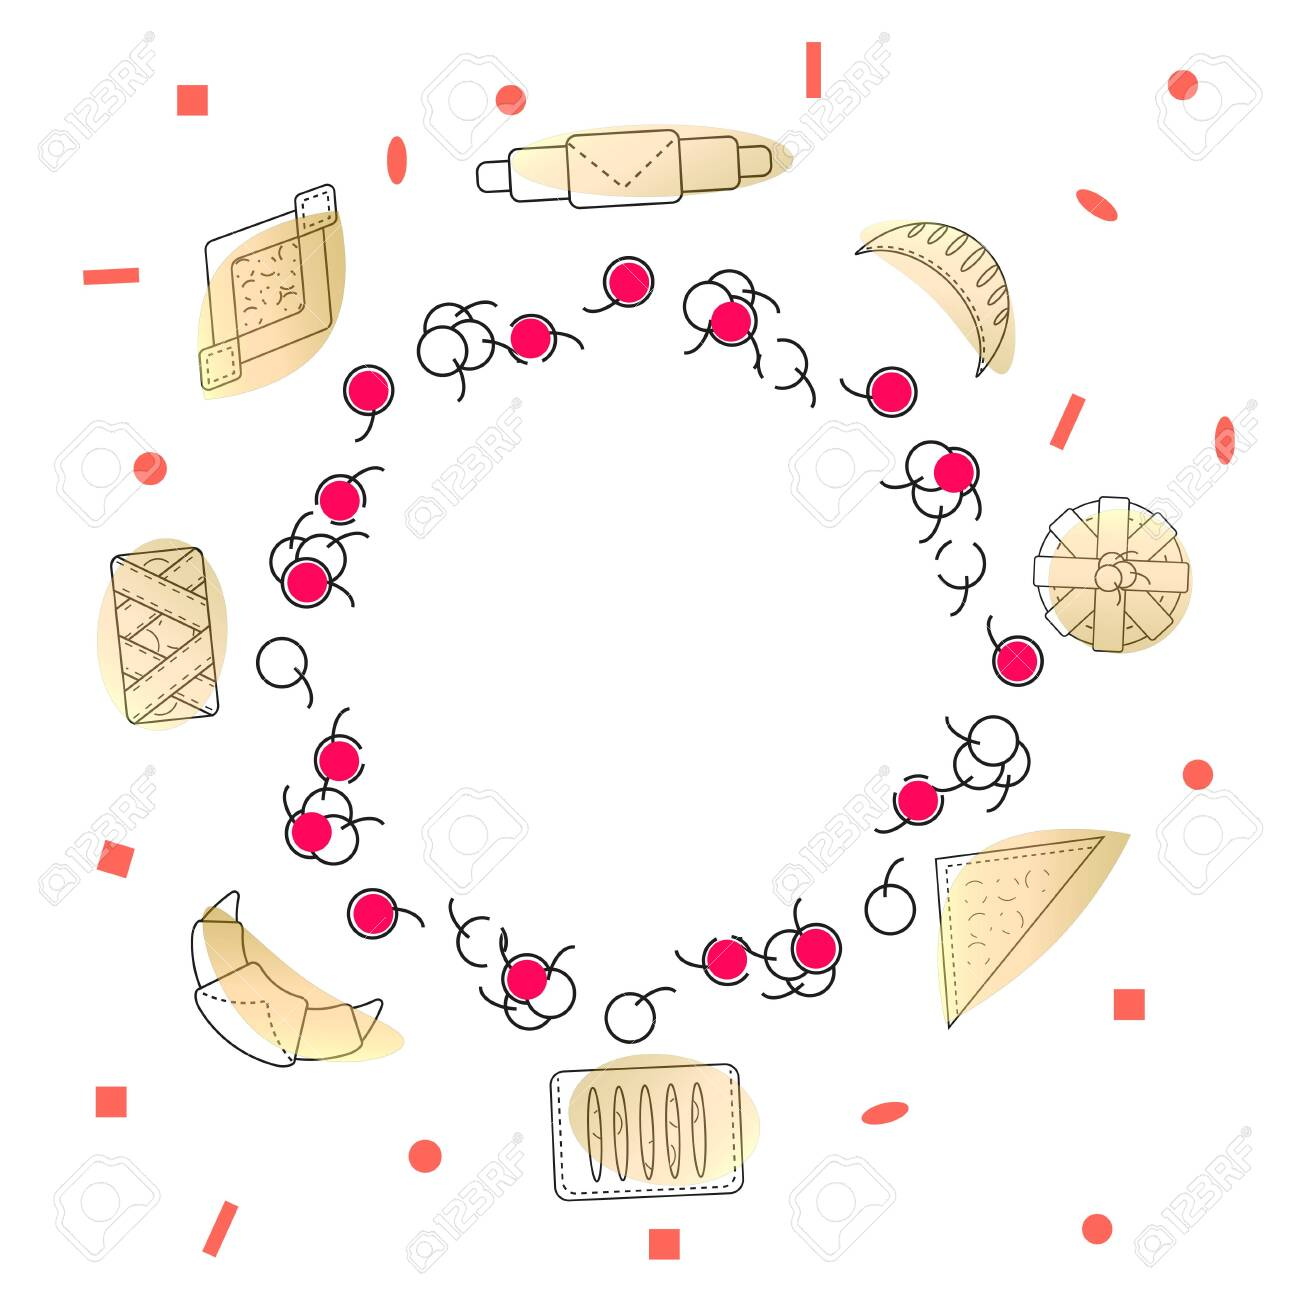 Decorative wreath of pastry cherries and fresh pastries and buns. Set of bakery and pastry products in outline style on white background. Vector illustration for bakeries, cafe, menu. - 128112605